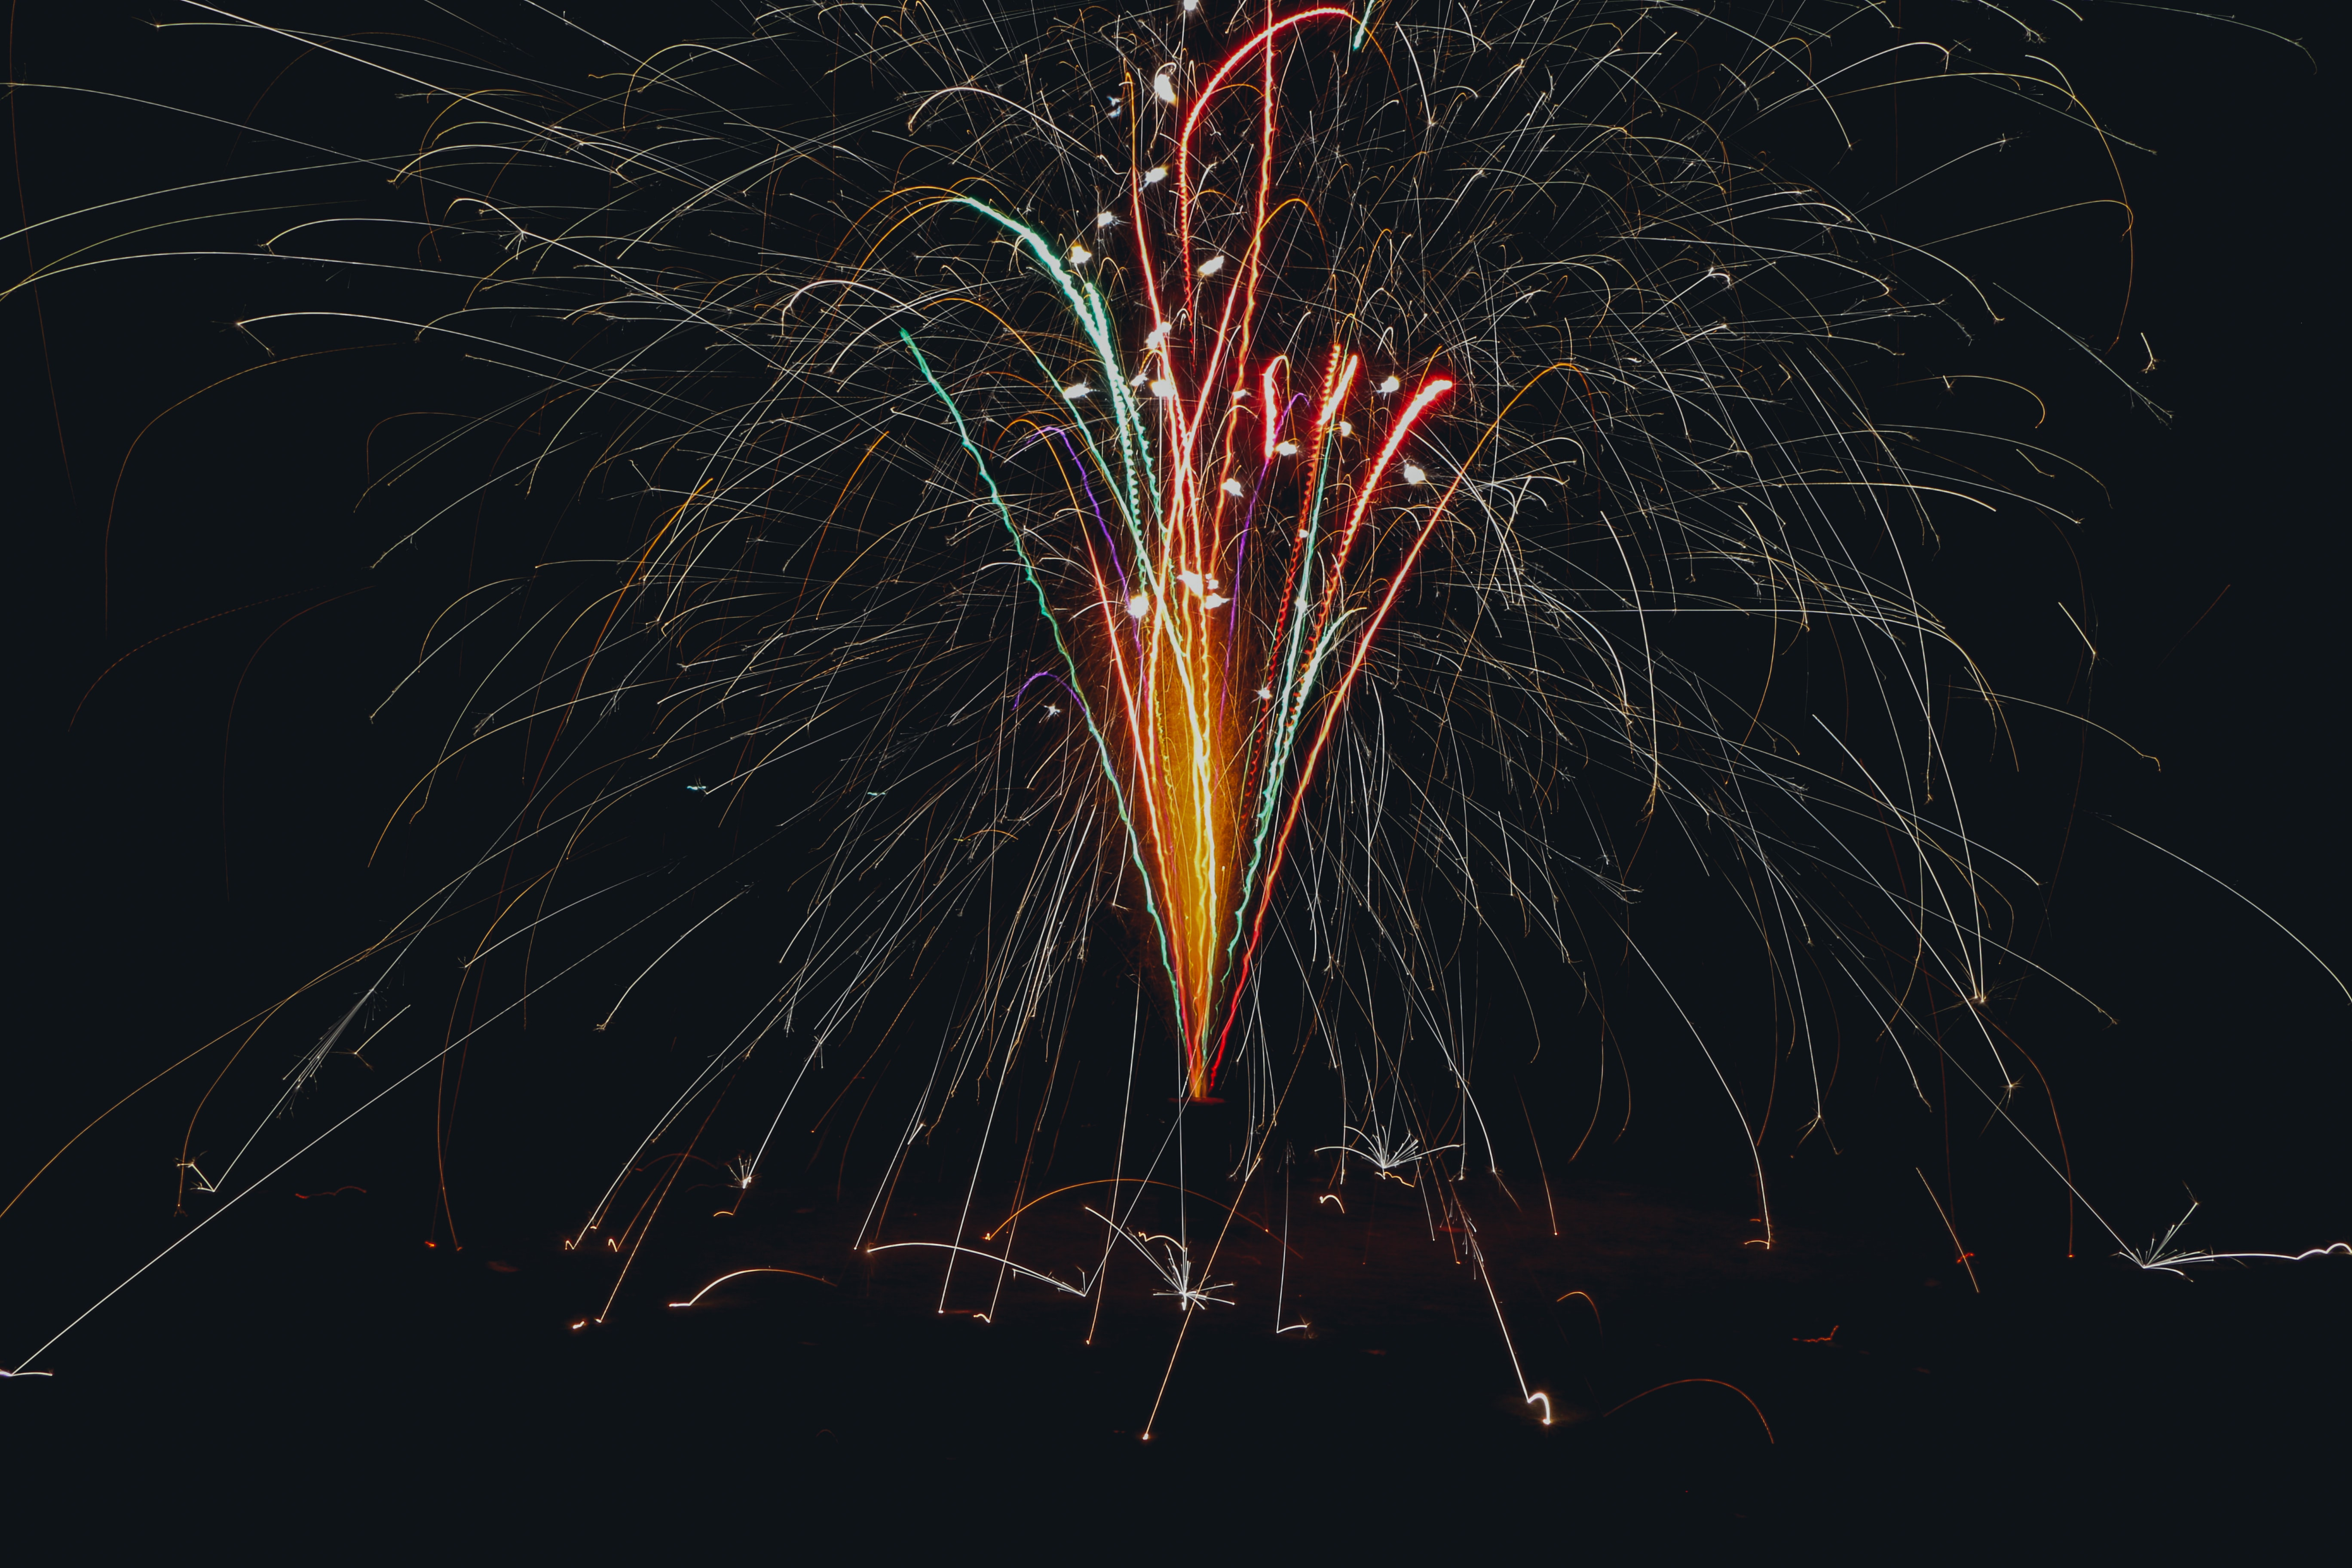 firecrackers photo during nighttime